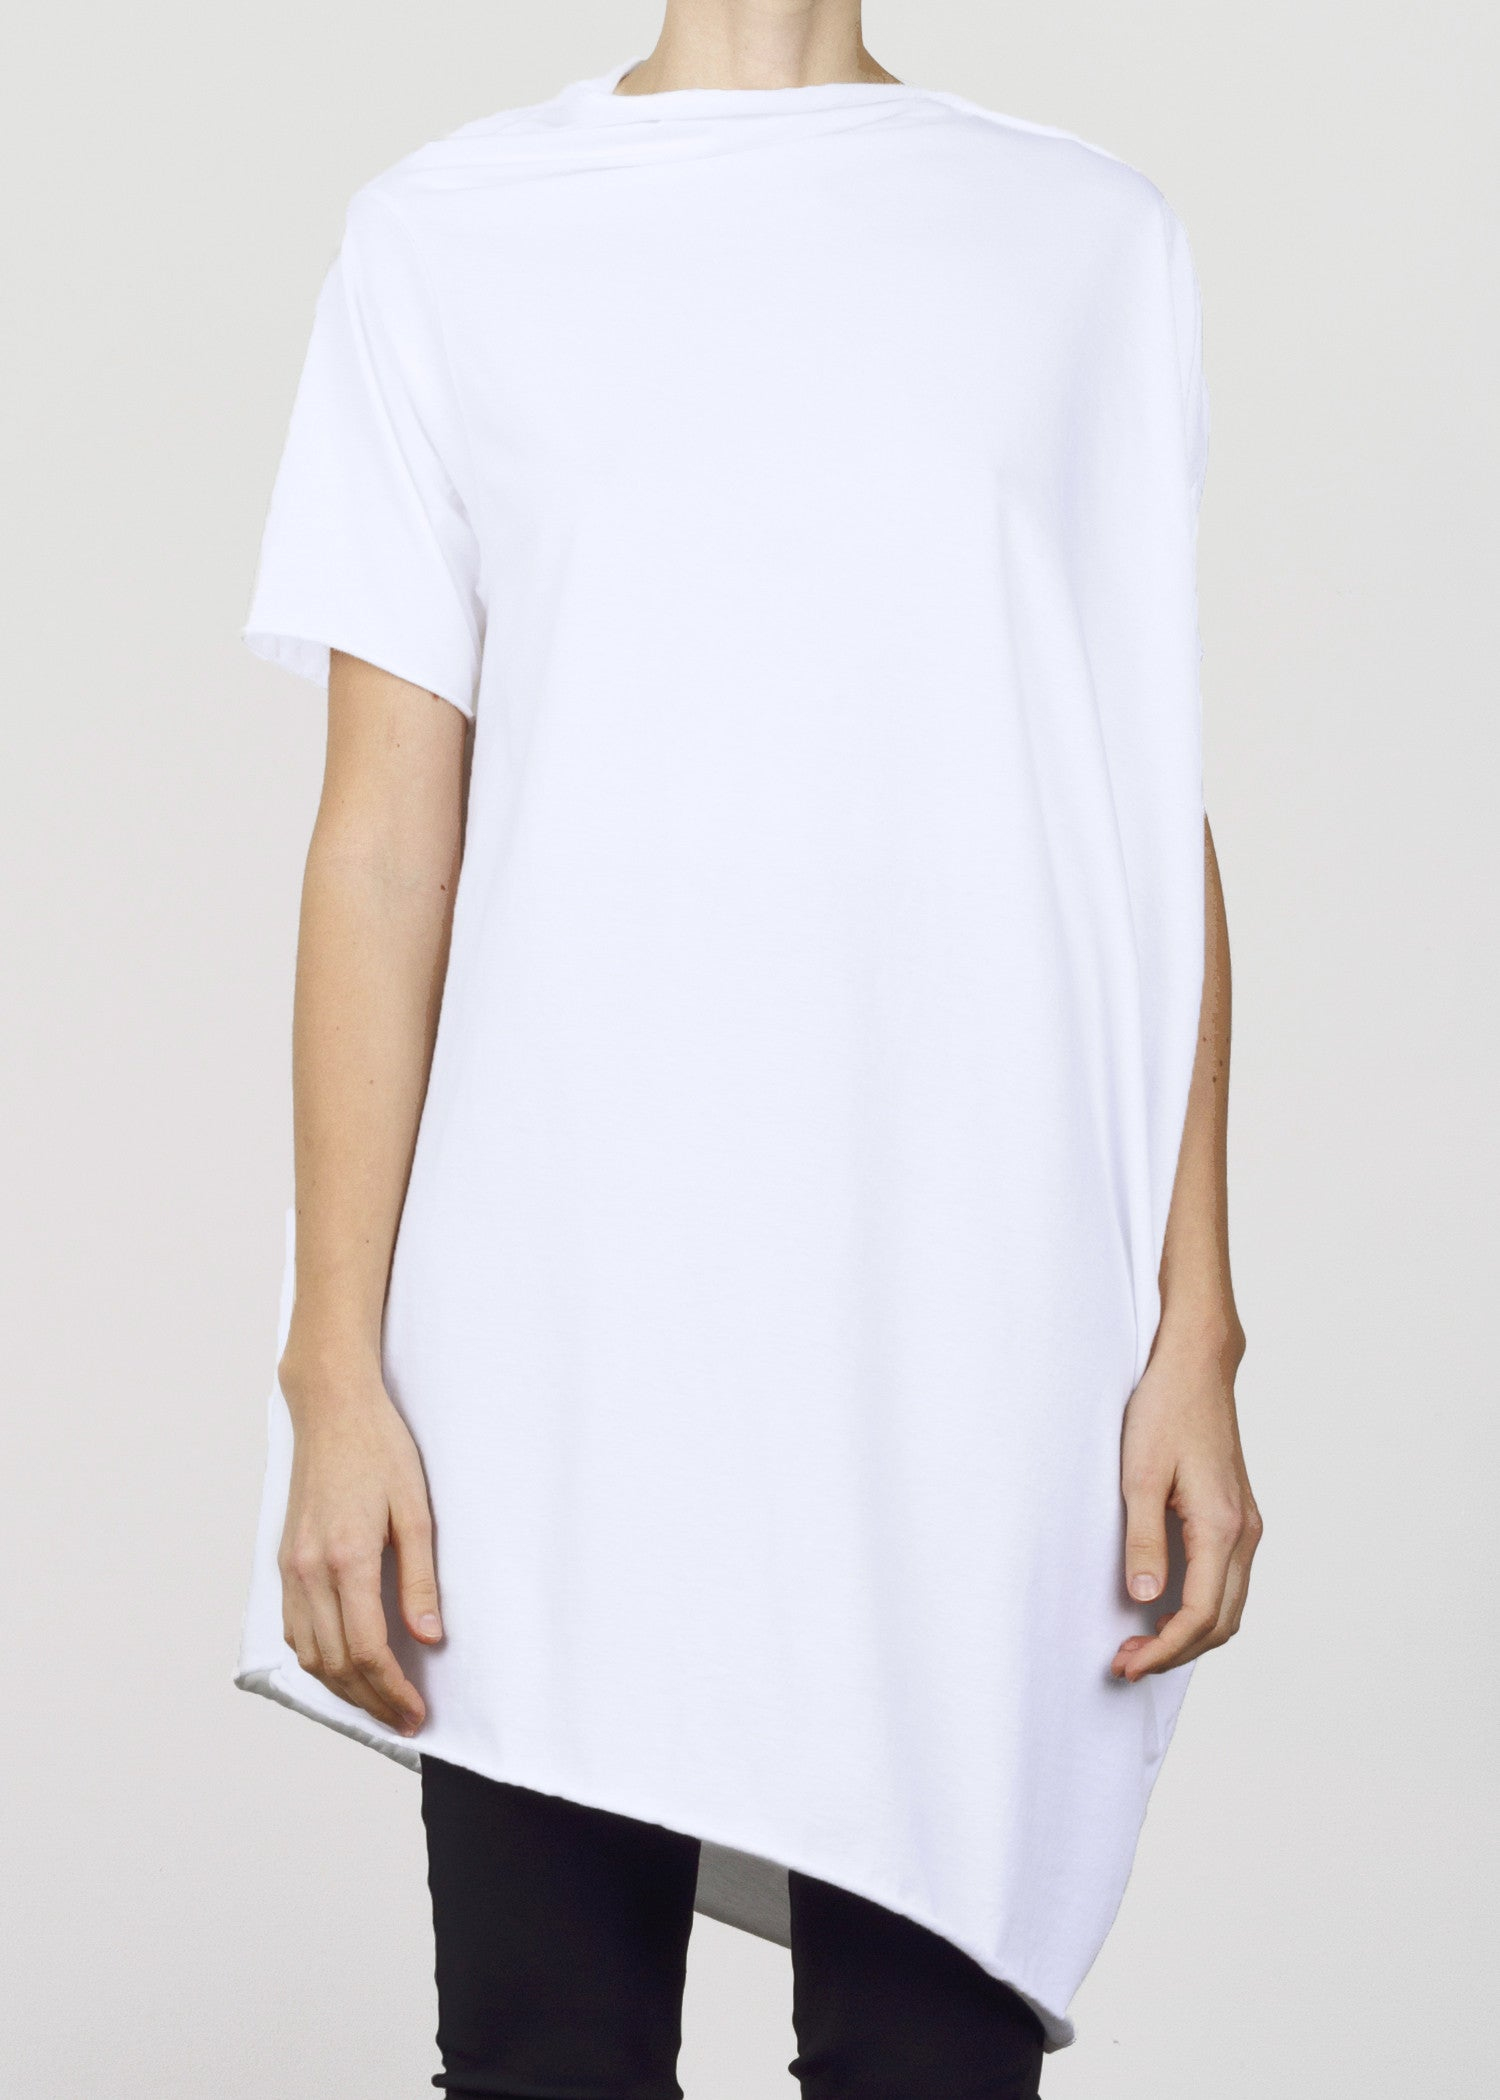 complexgeometries | DROP TUNIC